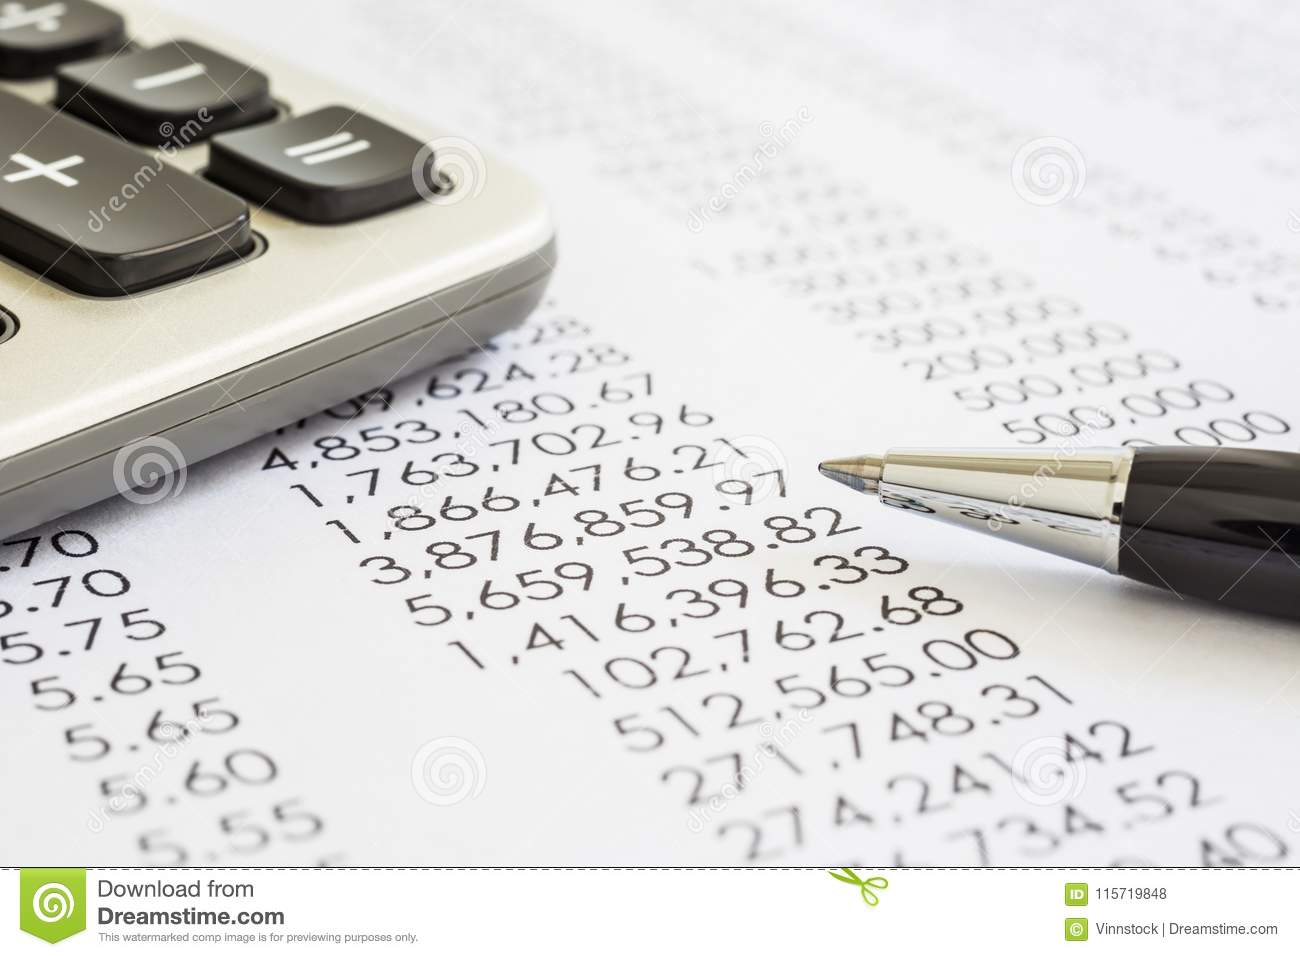 Accounting and audit evaluation of financial statements.